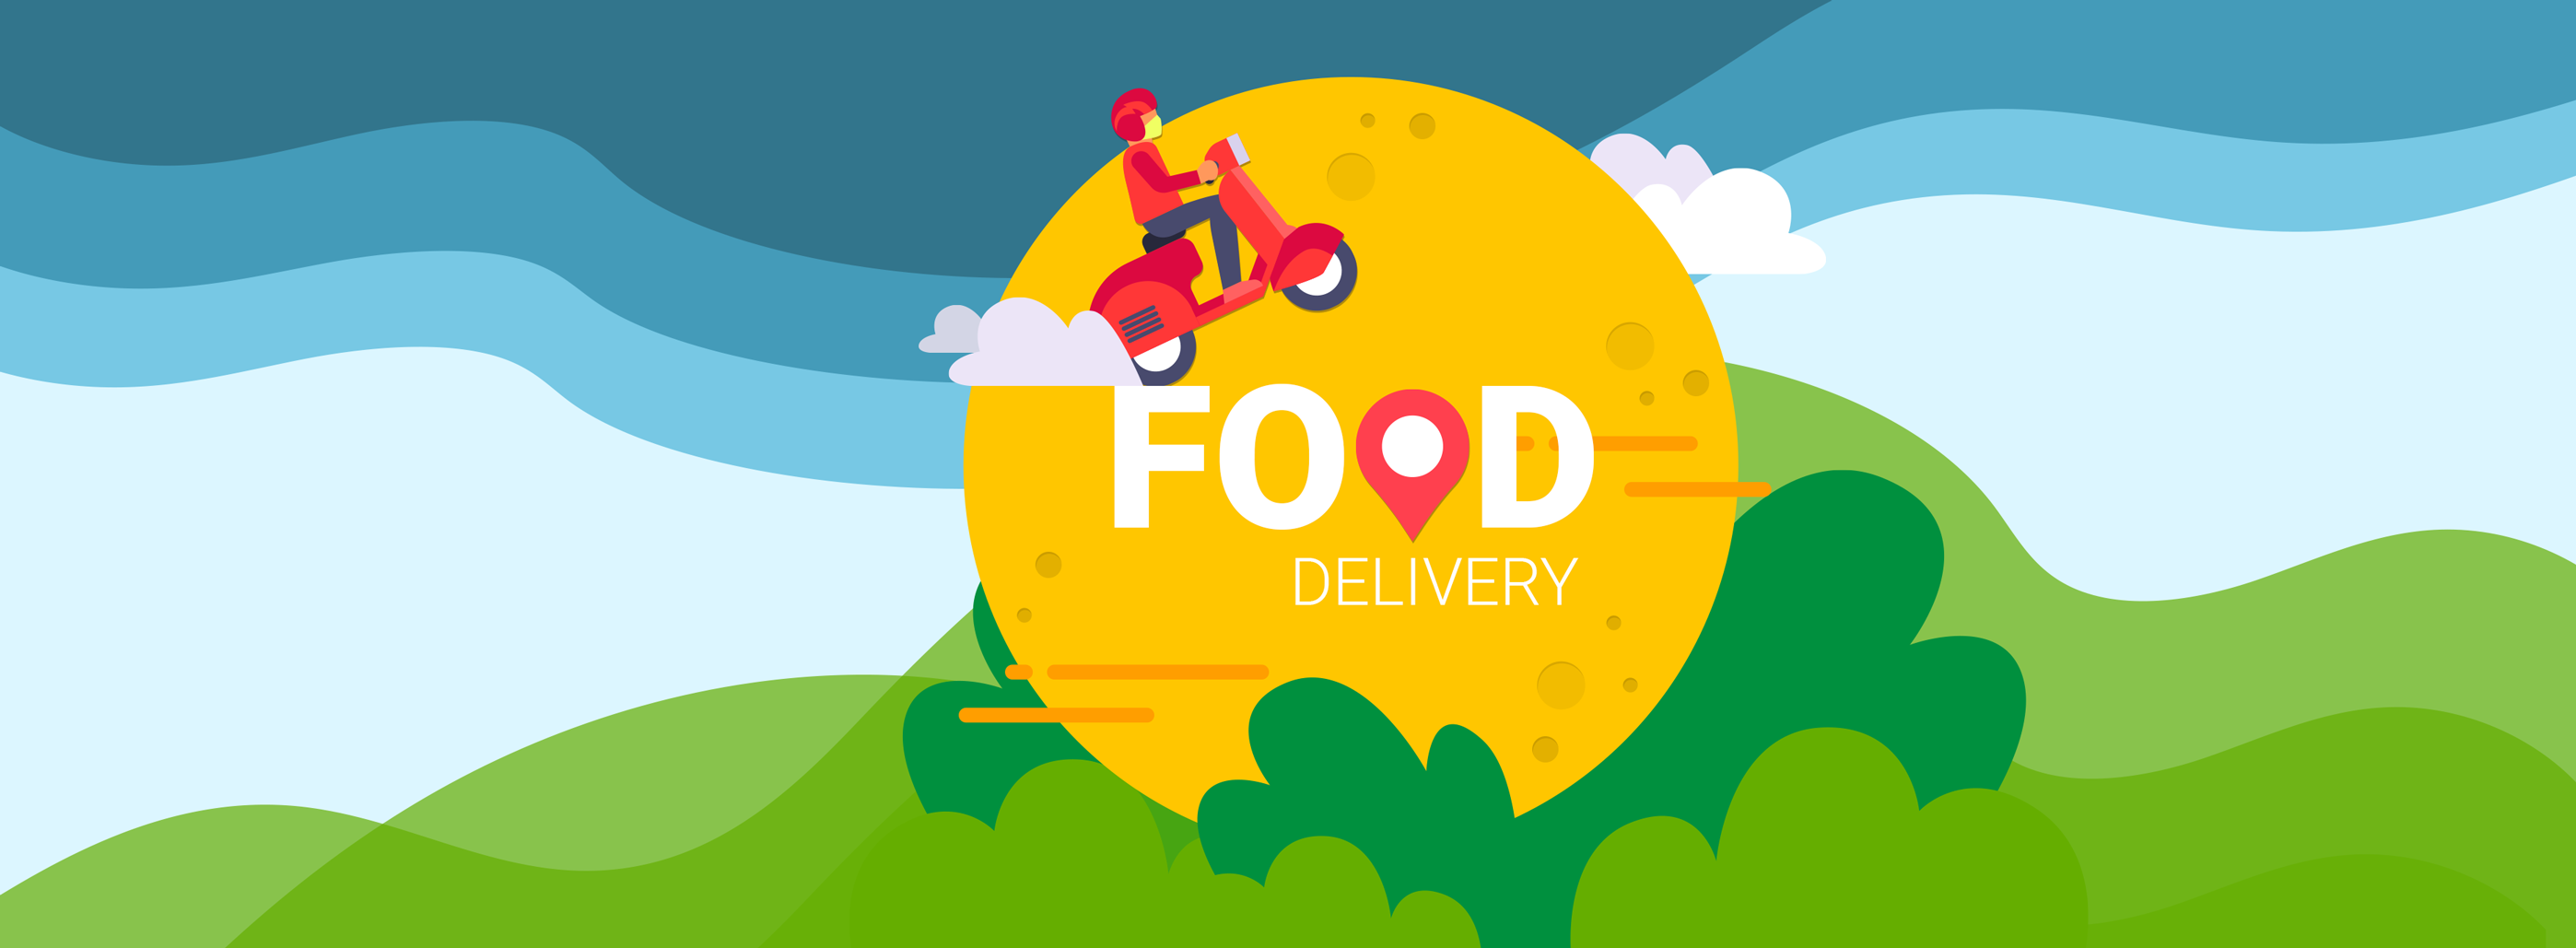 Food delivery app bkg